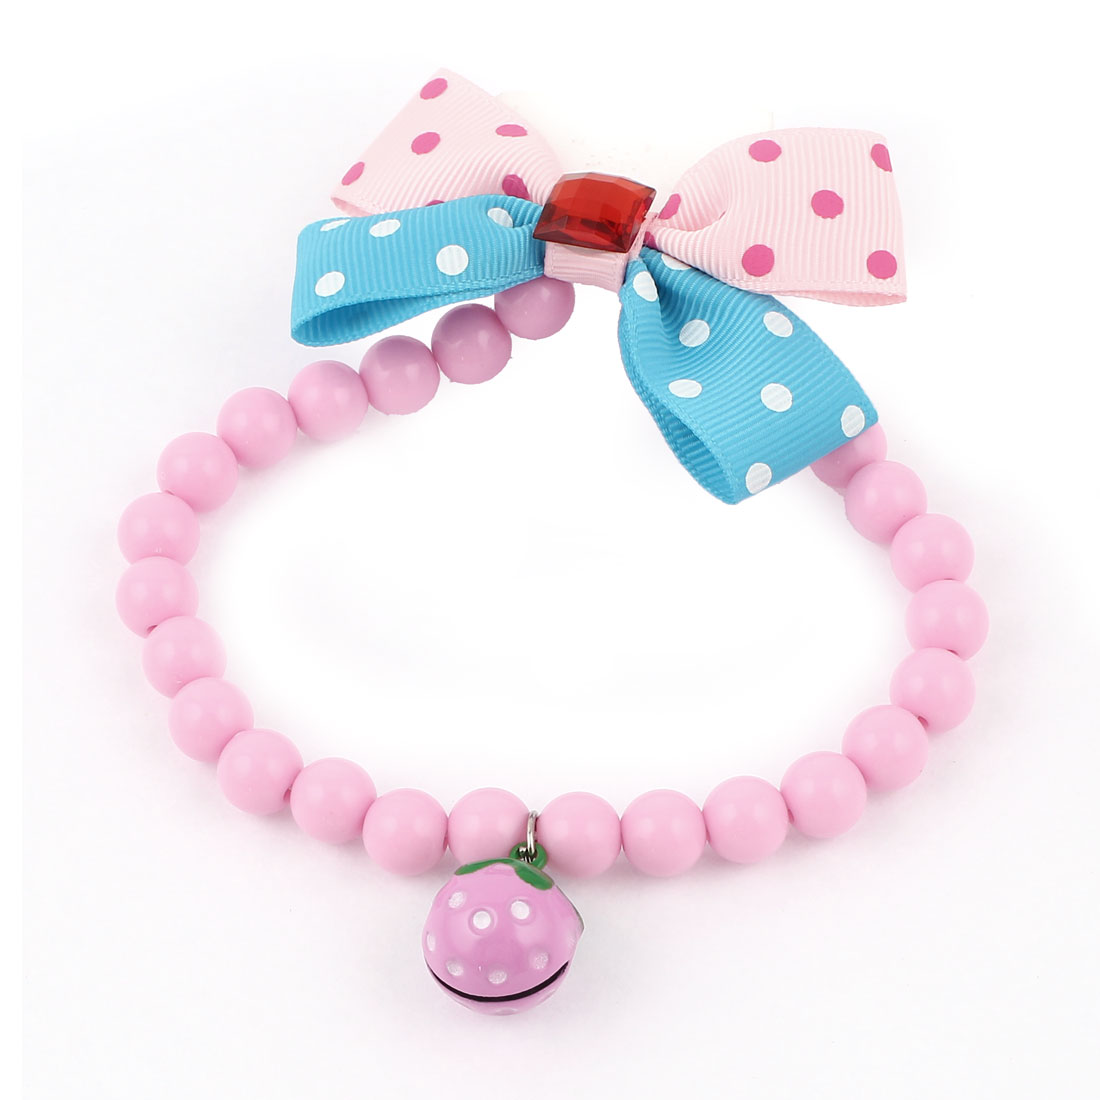 Metal Bell Pendant Bowtie Accent Pet Dog Plastic Beads Collar Necklace Pink Blue S